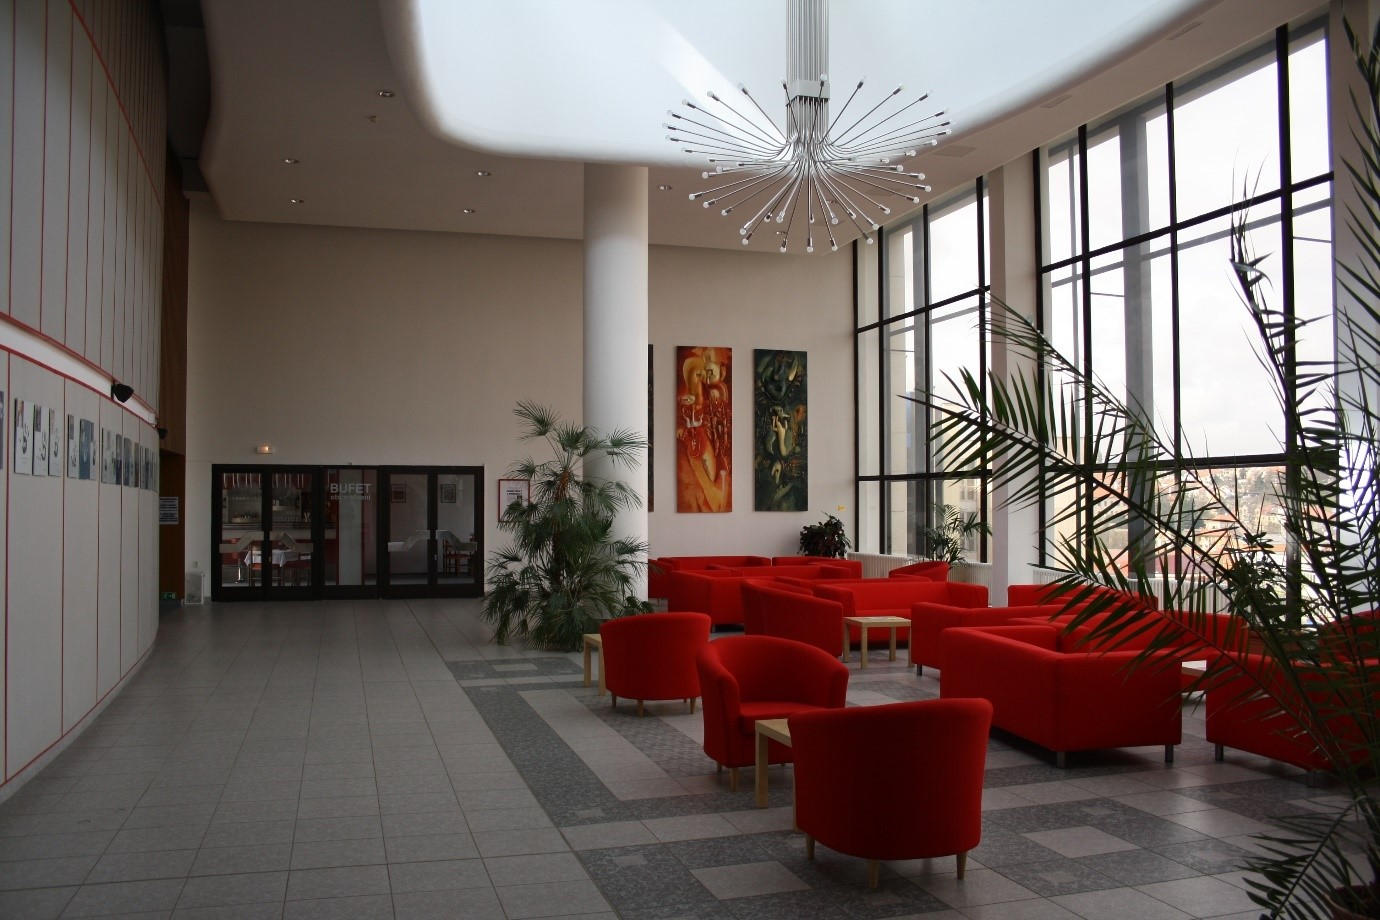 modern hotel foyer with red tub chairs and large windows